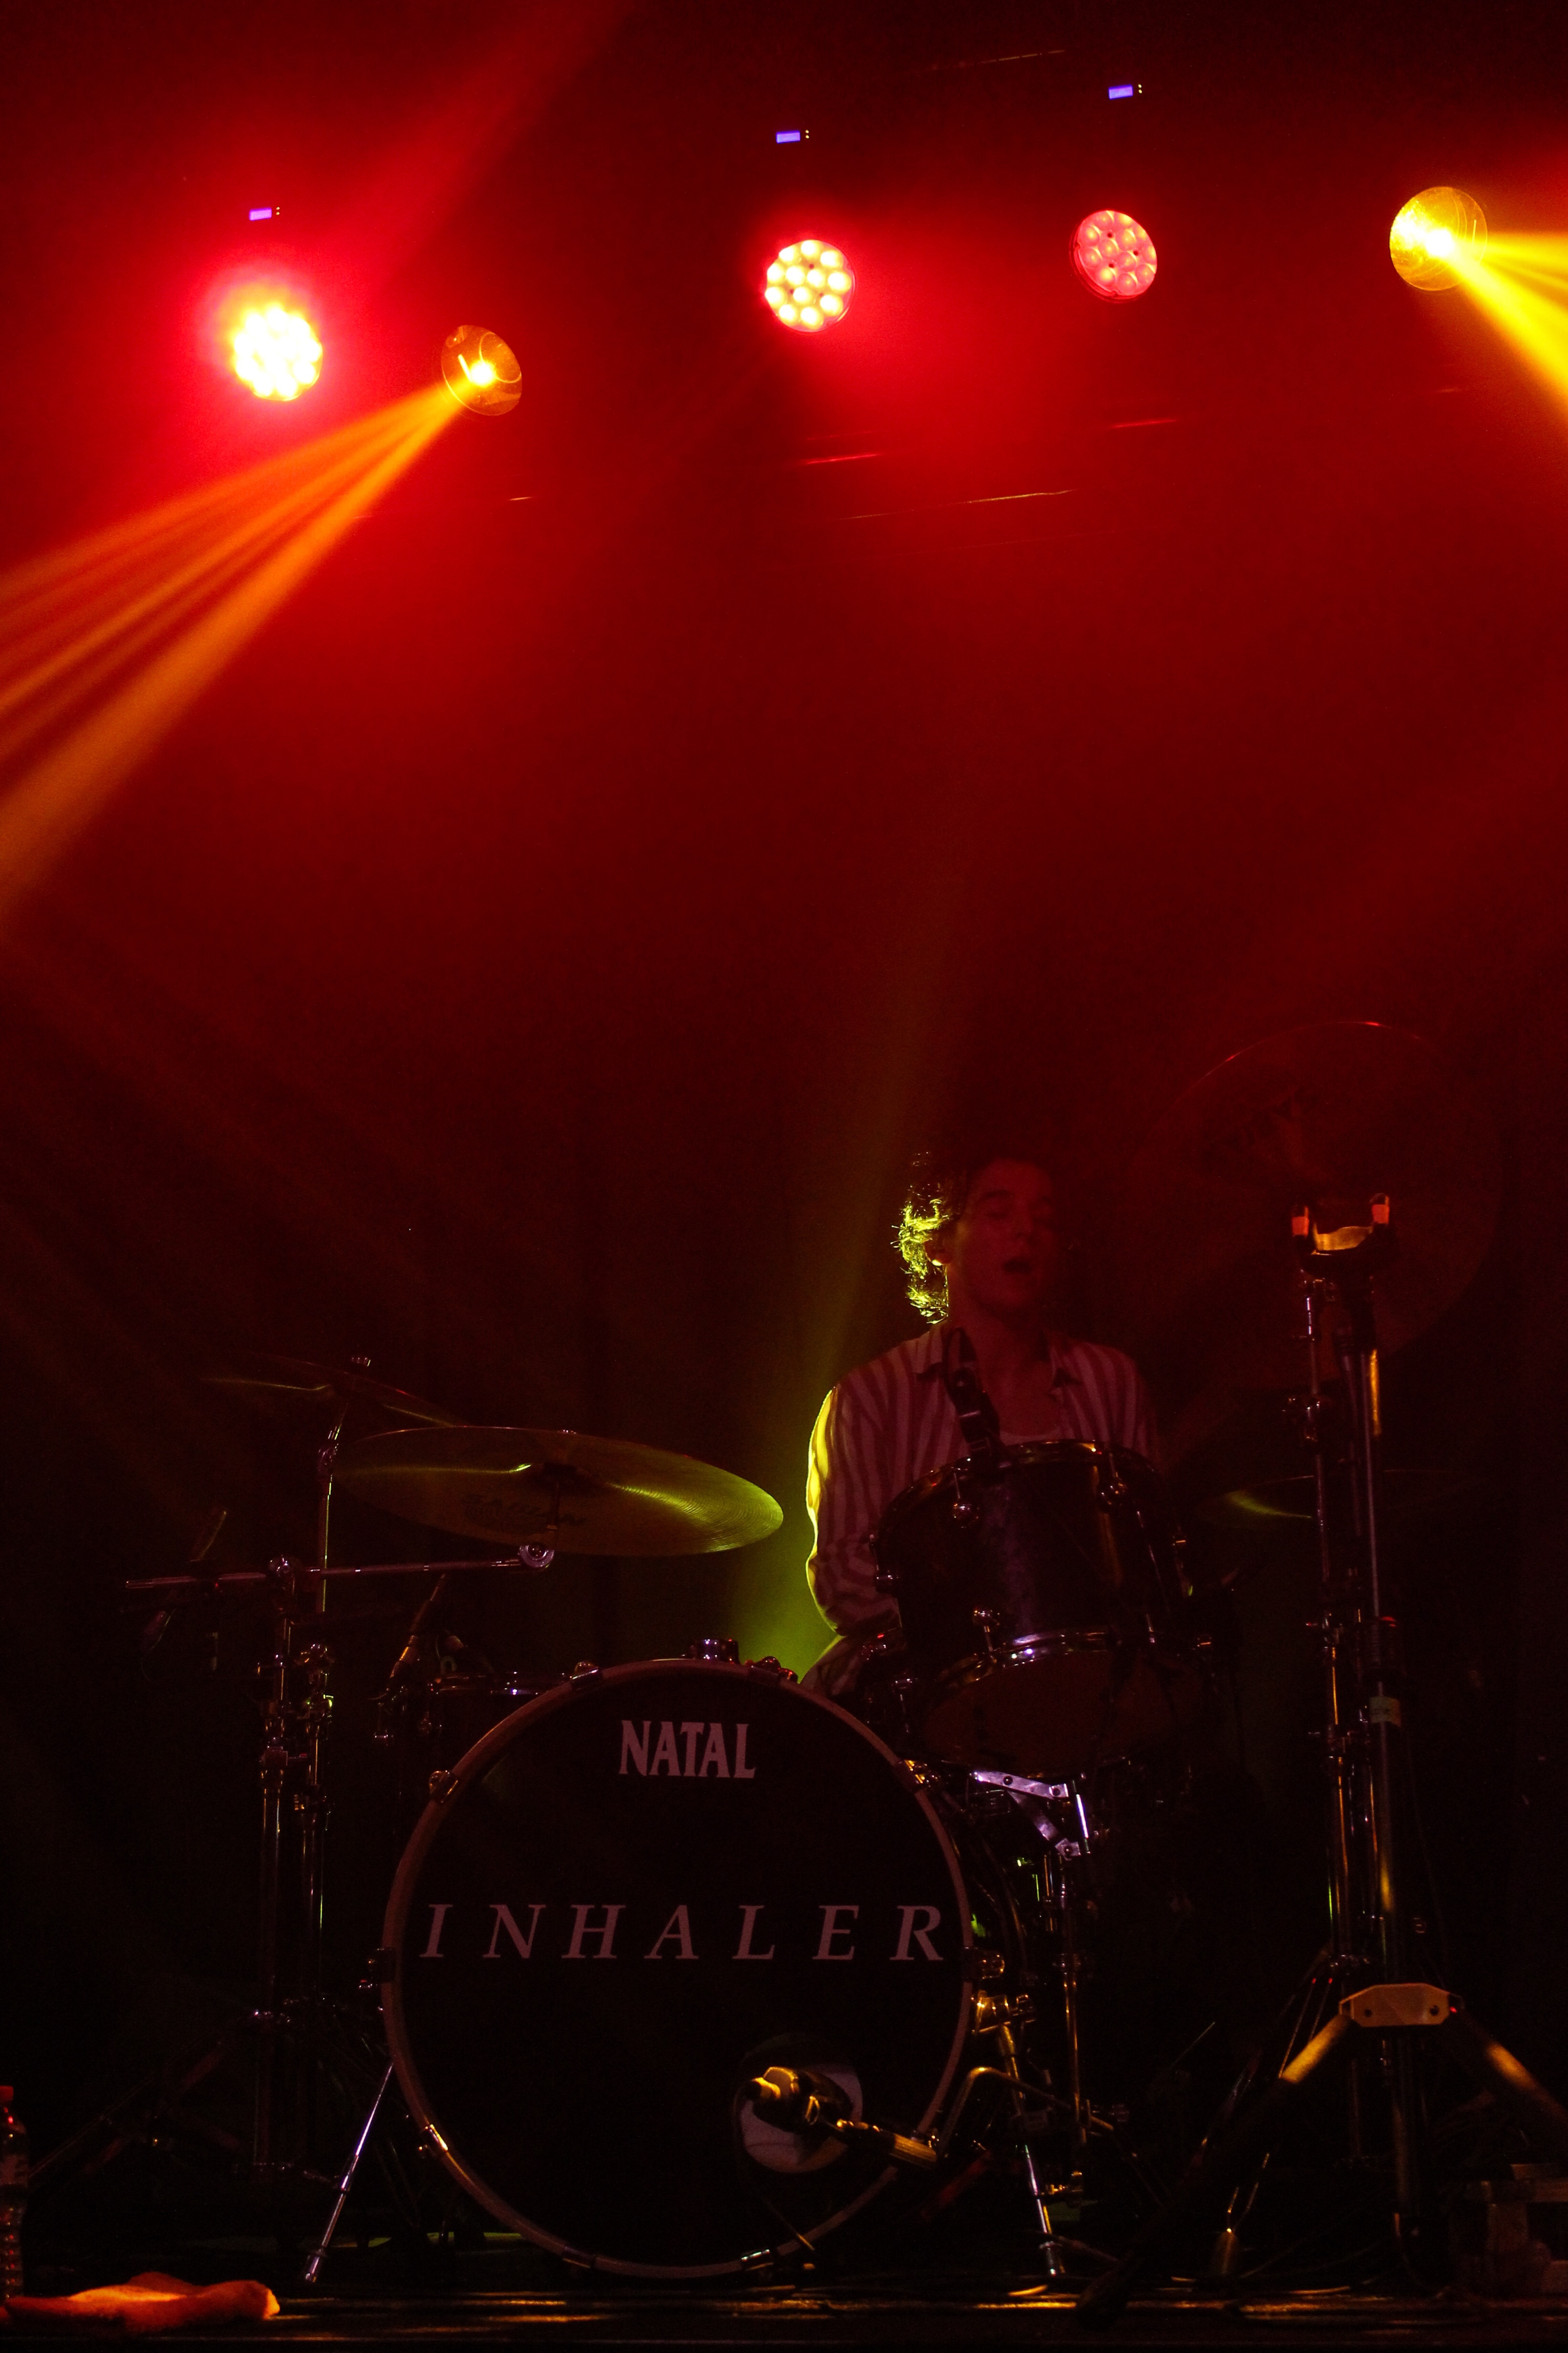 Inhaler drummer, Ryan McMahon. Photo by Leanne Gabriel.